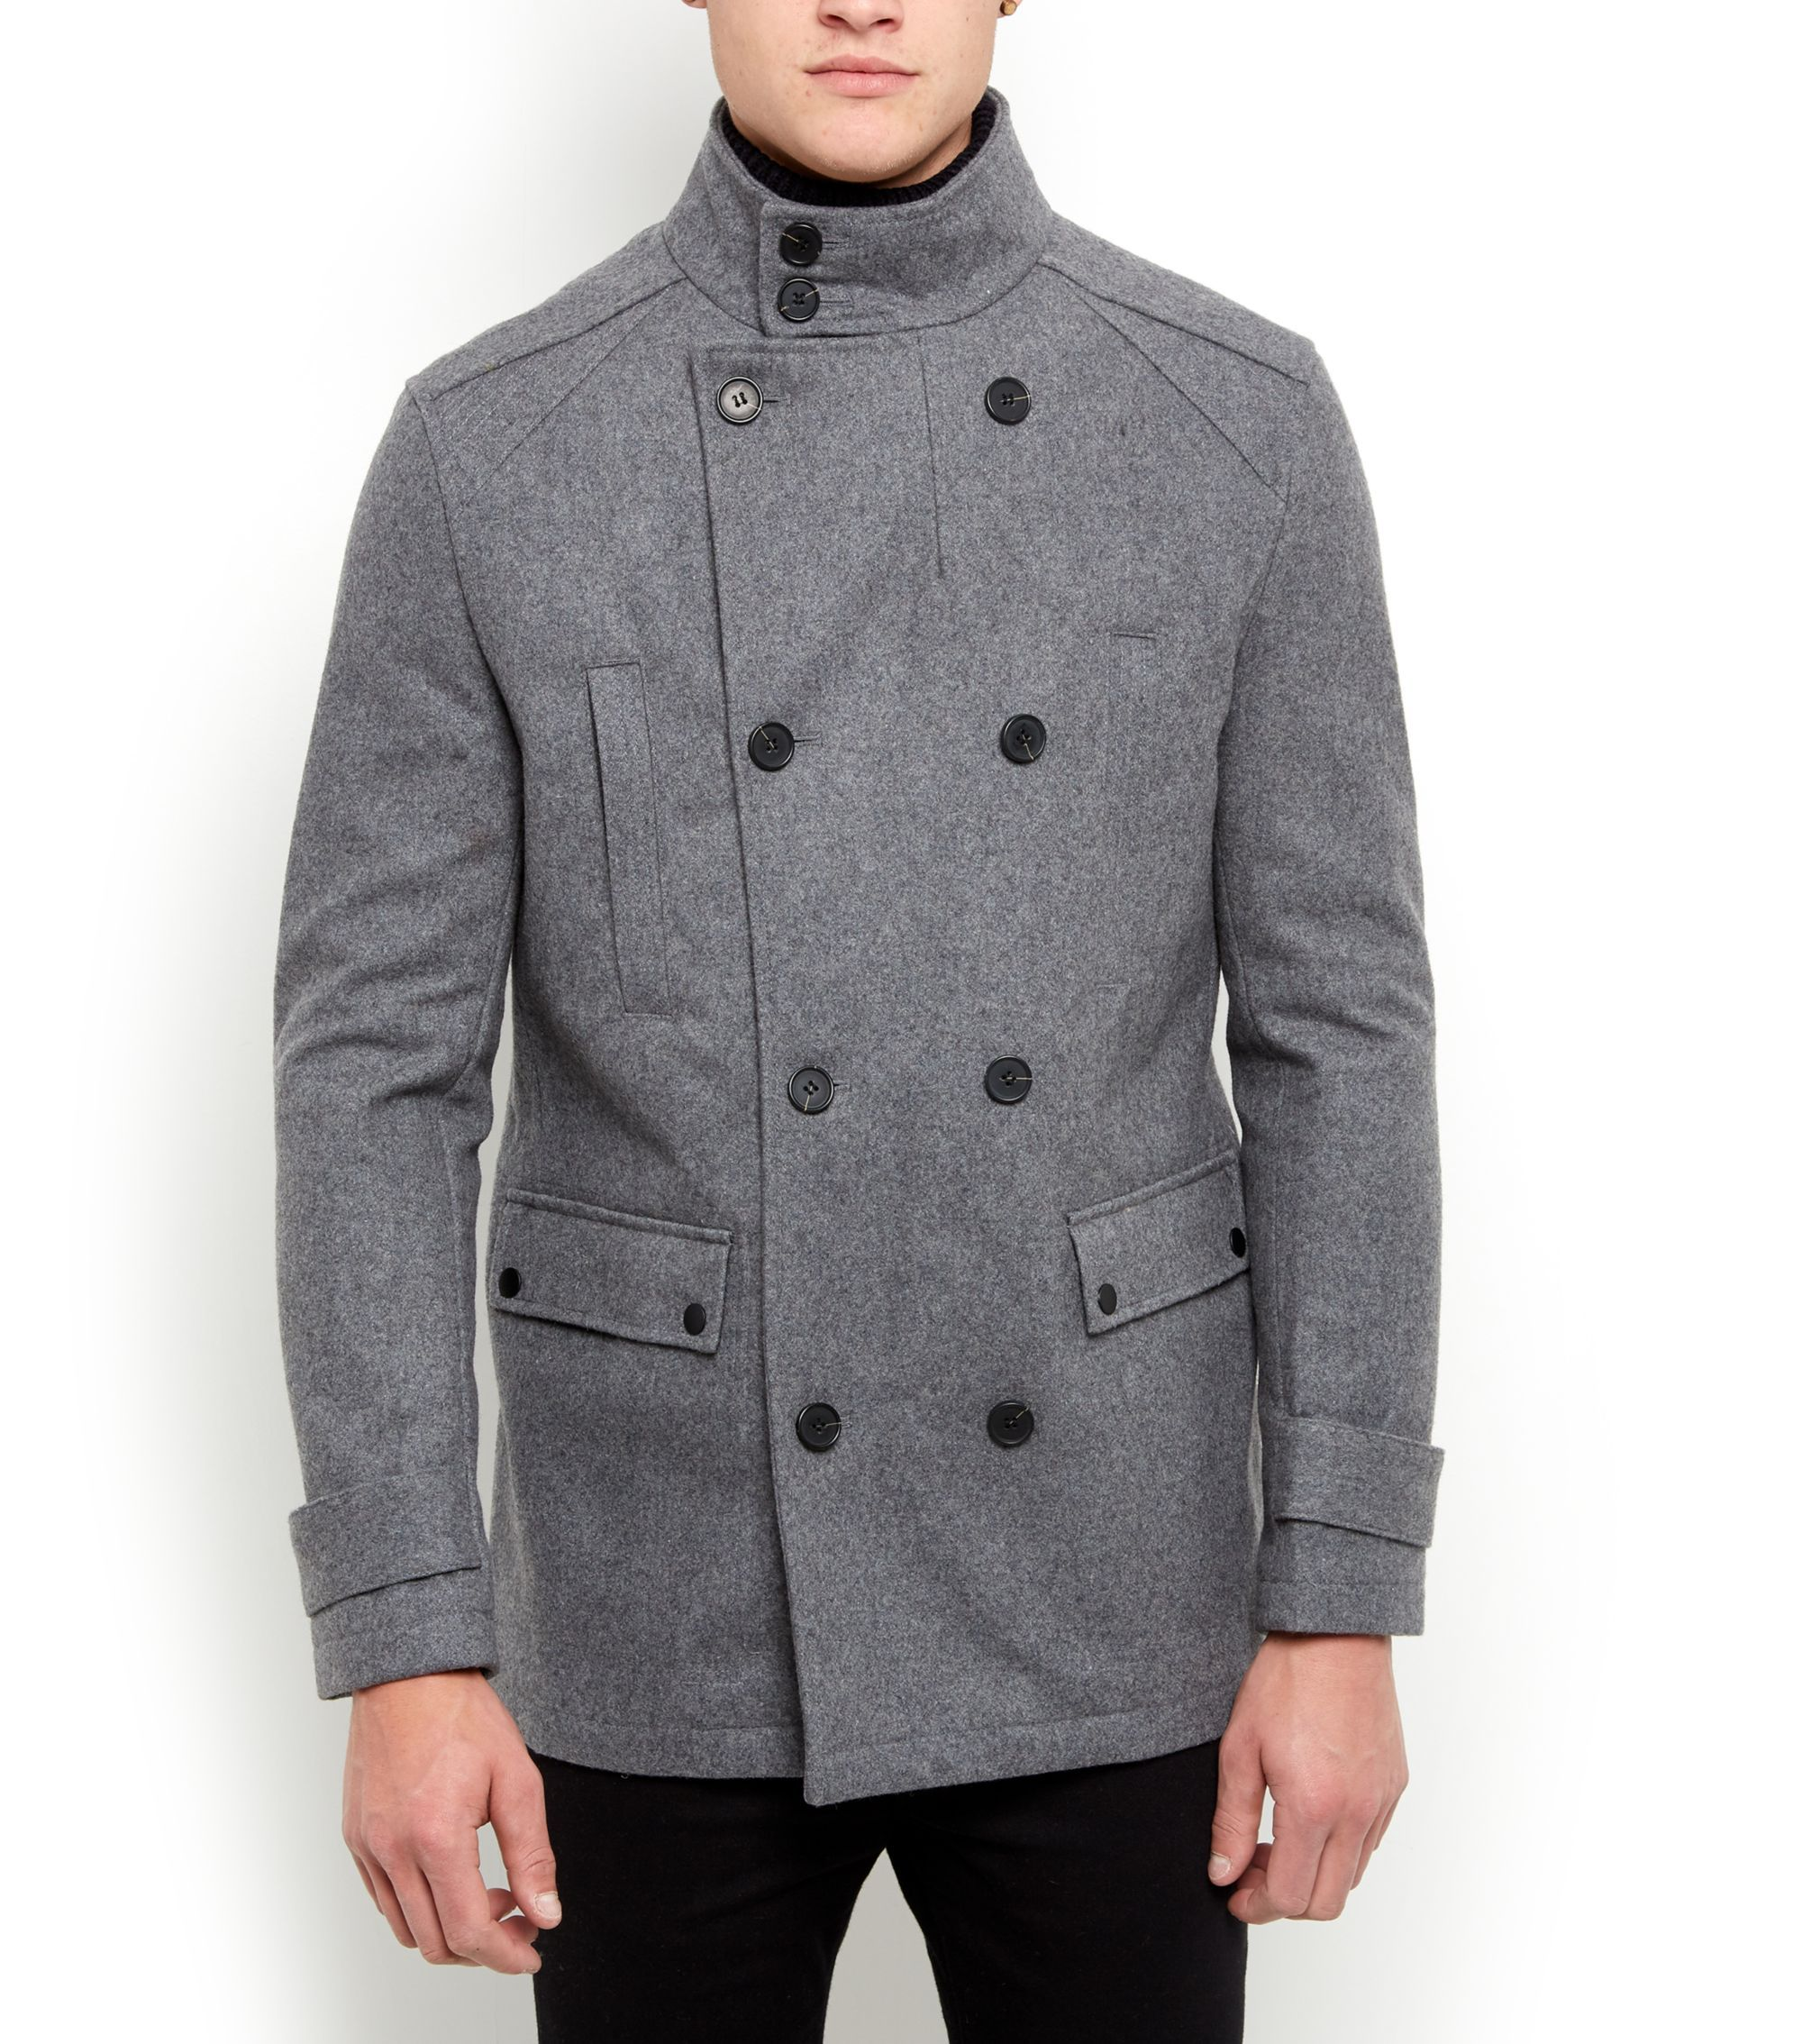 Pale Grey Wool Mix Military Jacket | New Look | Fashion ...